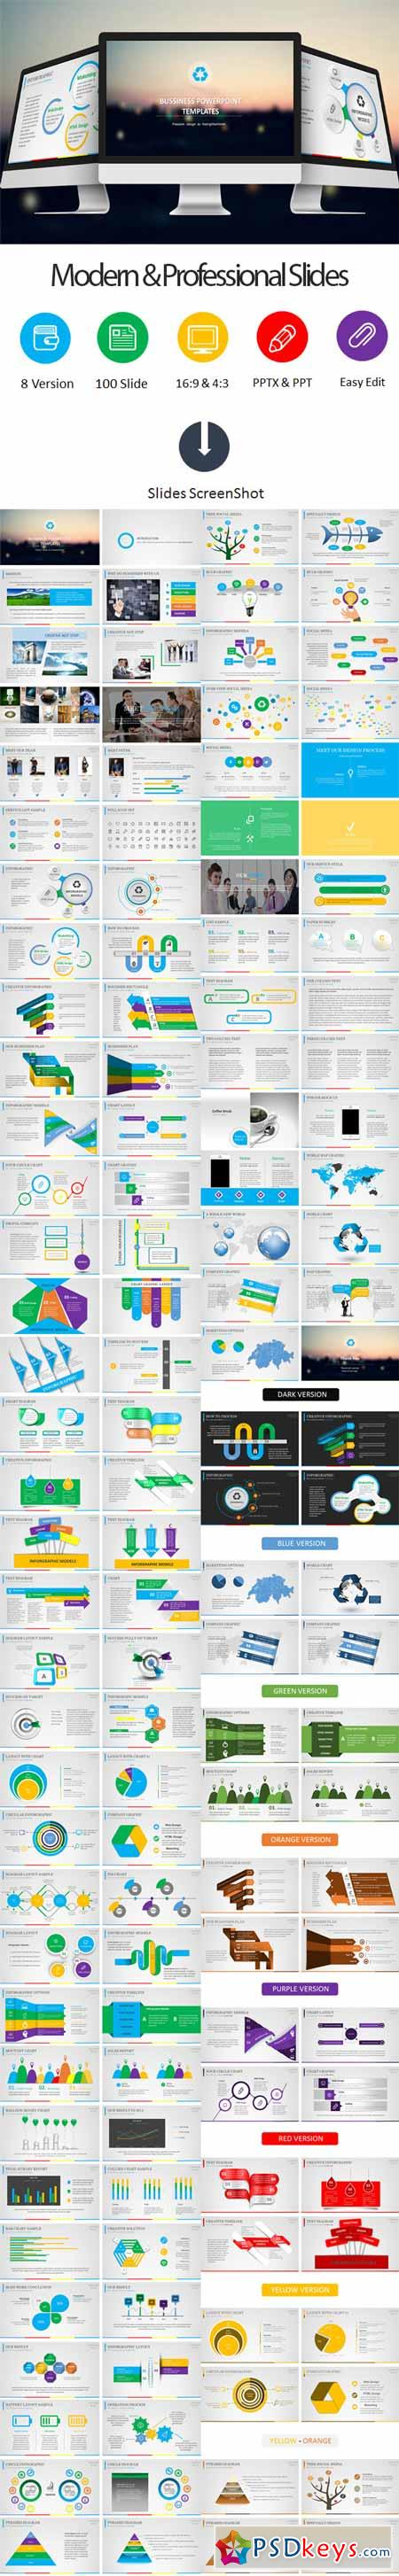 Bussiness powerpoint templates 9473945 free download photoshop bussiness powerpoint templates 9473945 toneelgroepblik Gallery